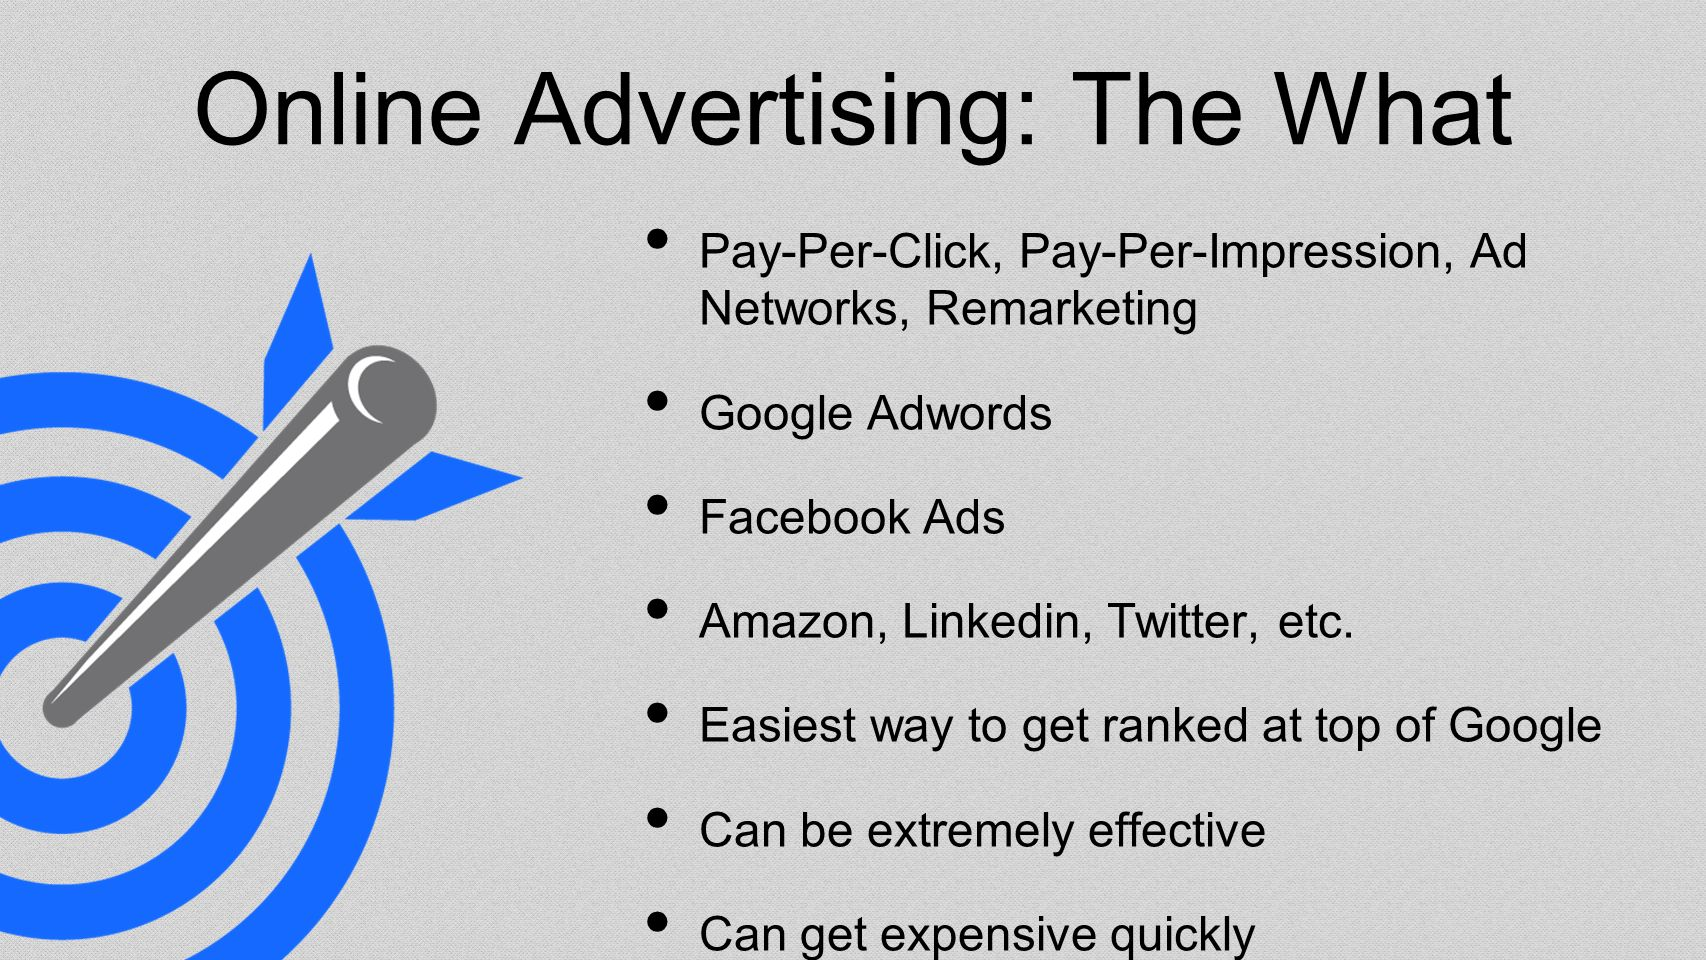 Online Advertising: The What Pay-Per-Click, Pay-Per-Impression, Ad Networks, Remarketing Google Adwords Facebook Ads Amazon, Linkedin, Twitter, etc.